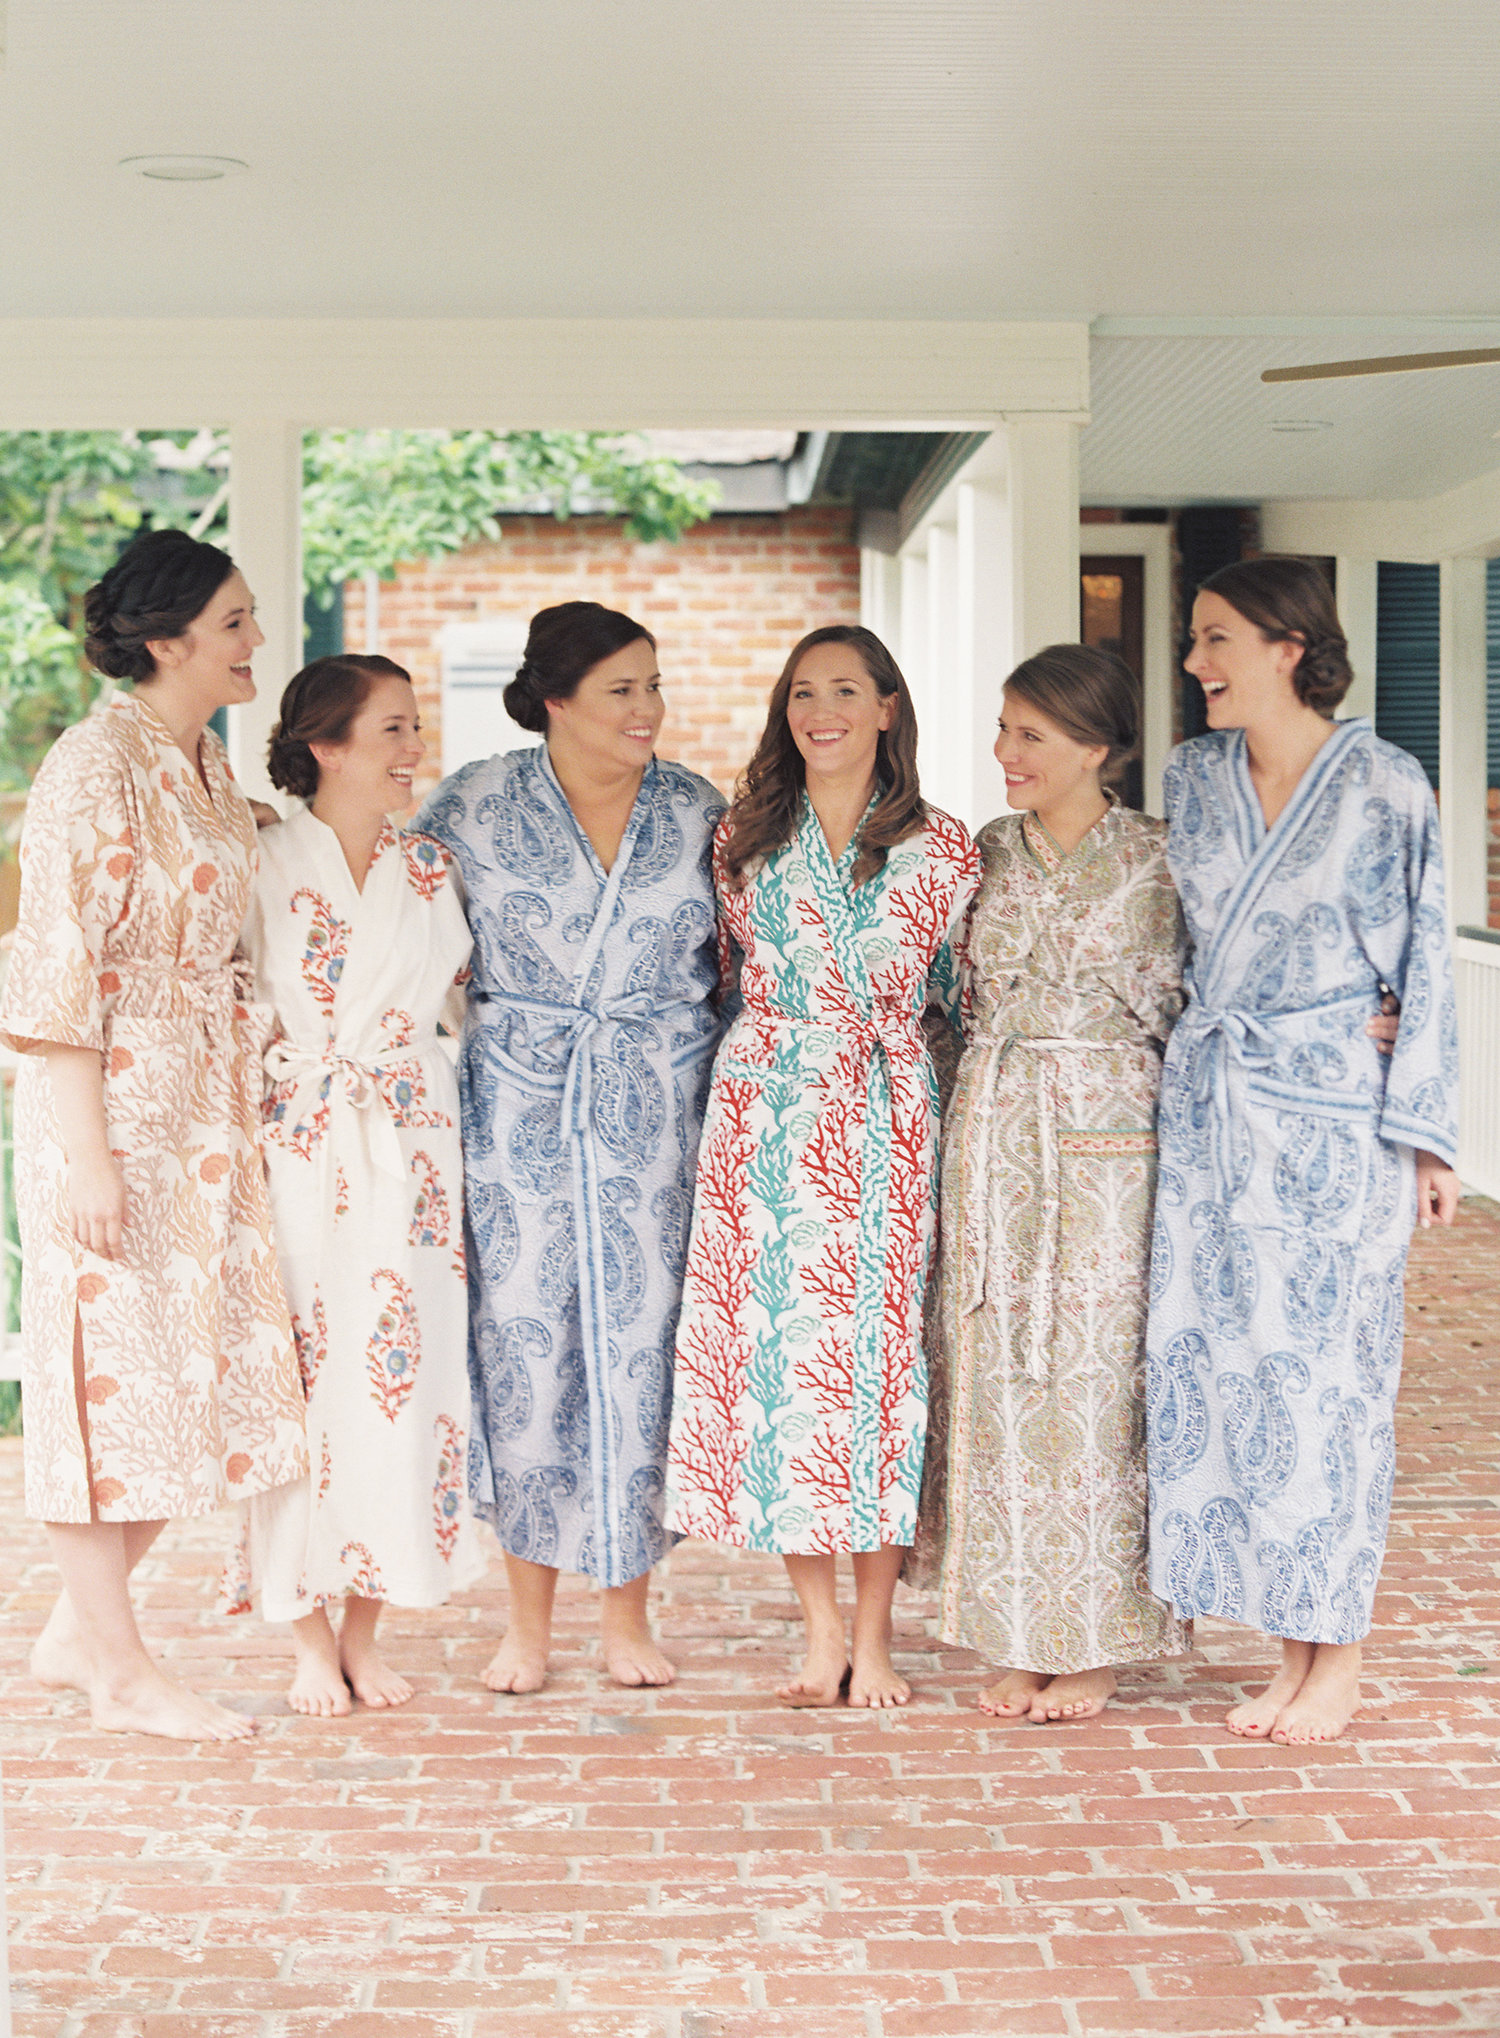 Bride and bridesmaids smile in their robes after getting dressed